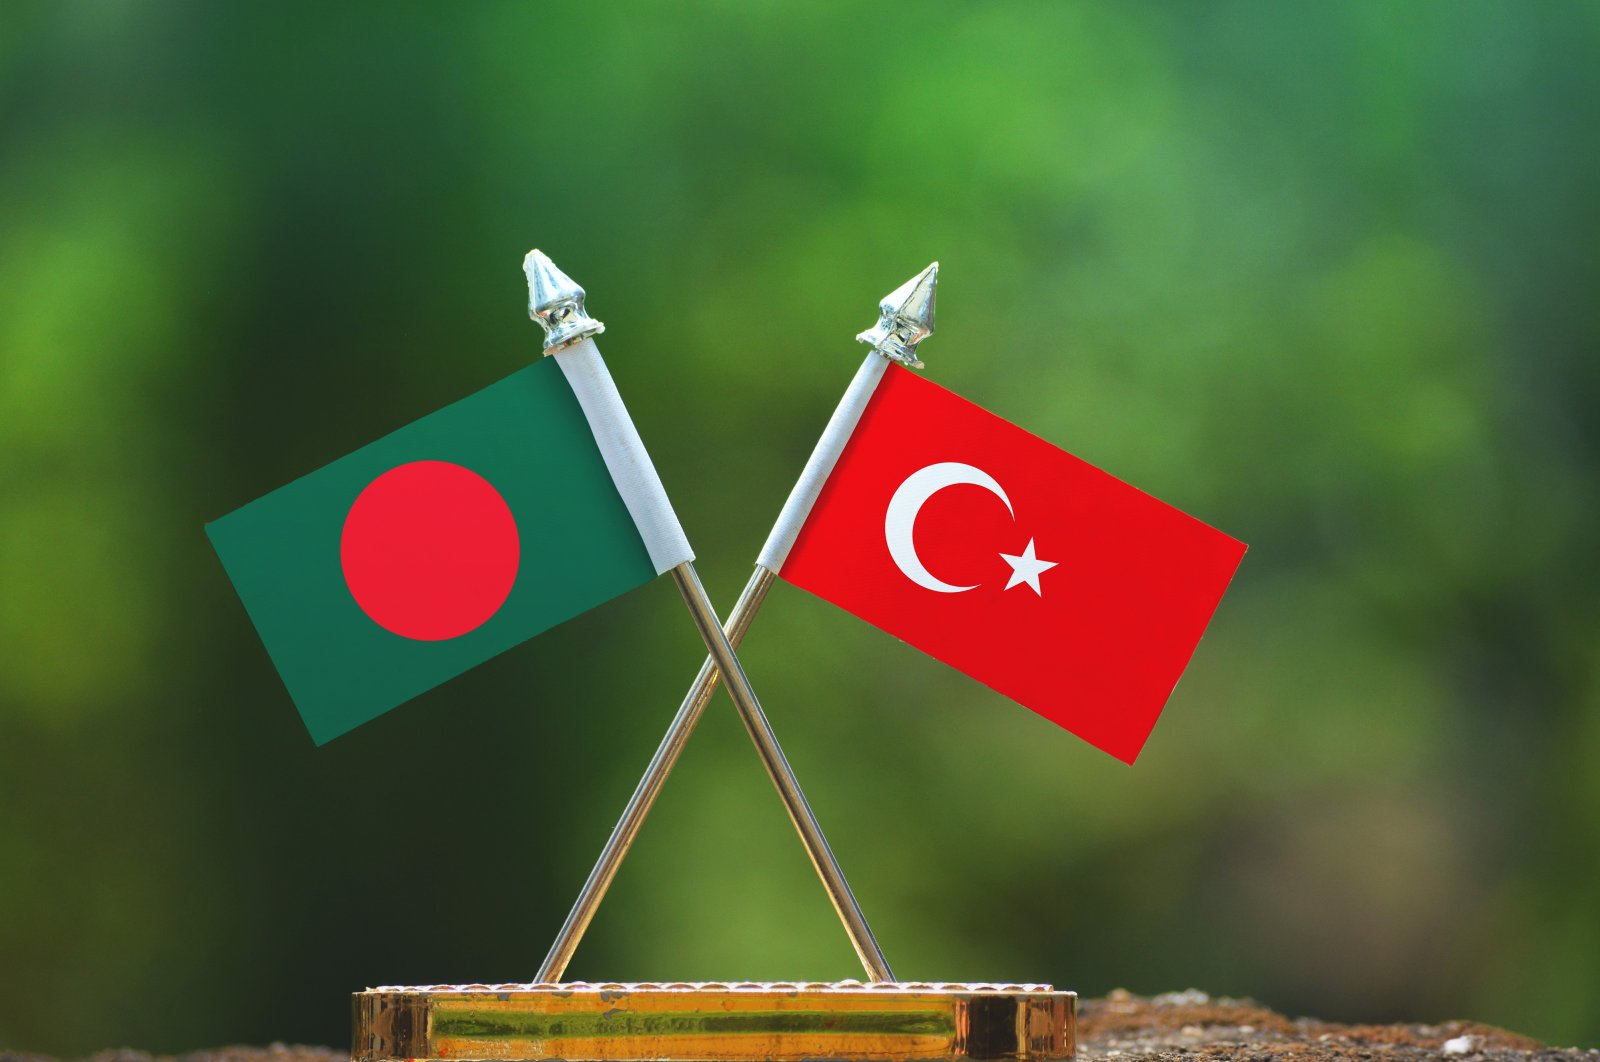 In this photo illustration, the flags of Bangladesh and Turkey are seen together with a blurred green background. (Photo by Shutterstock)